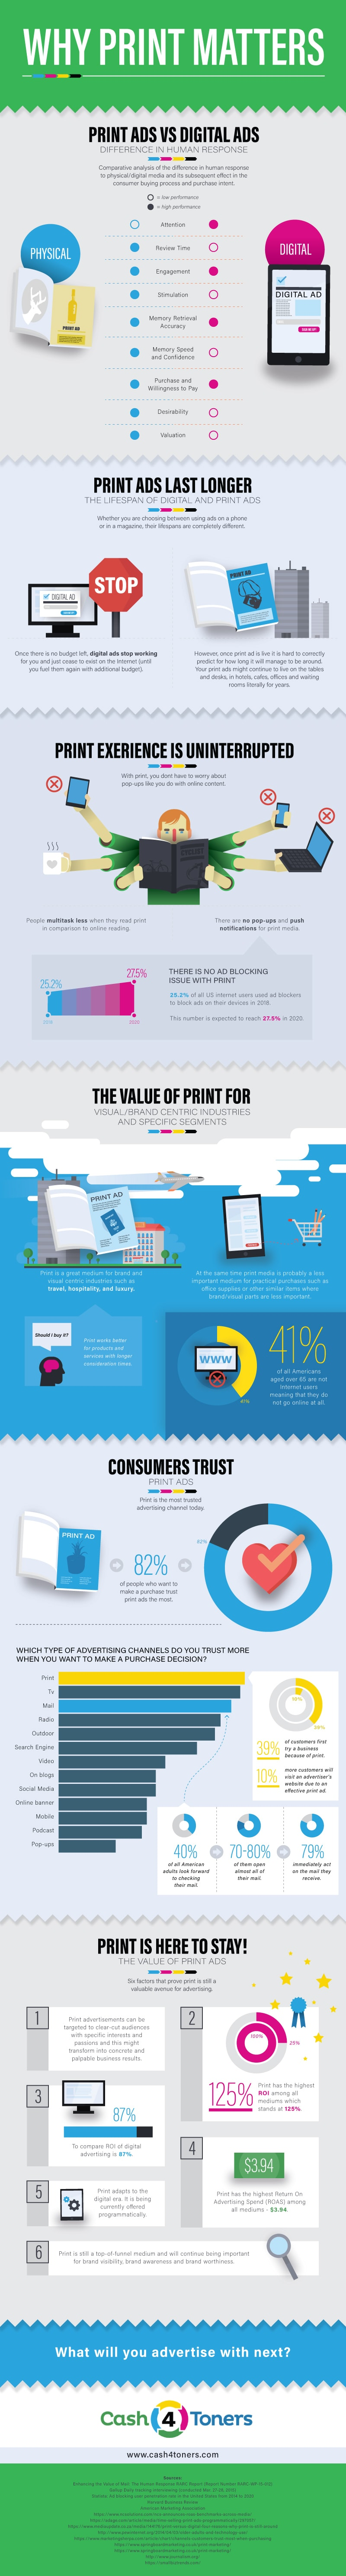 Print Is Not Dead - INFOGRAPHIC